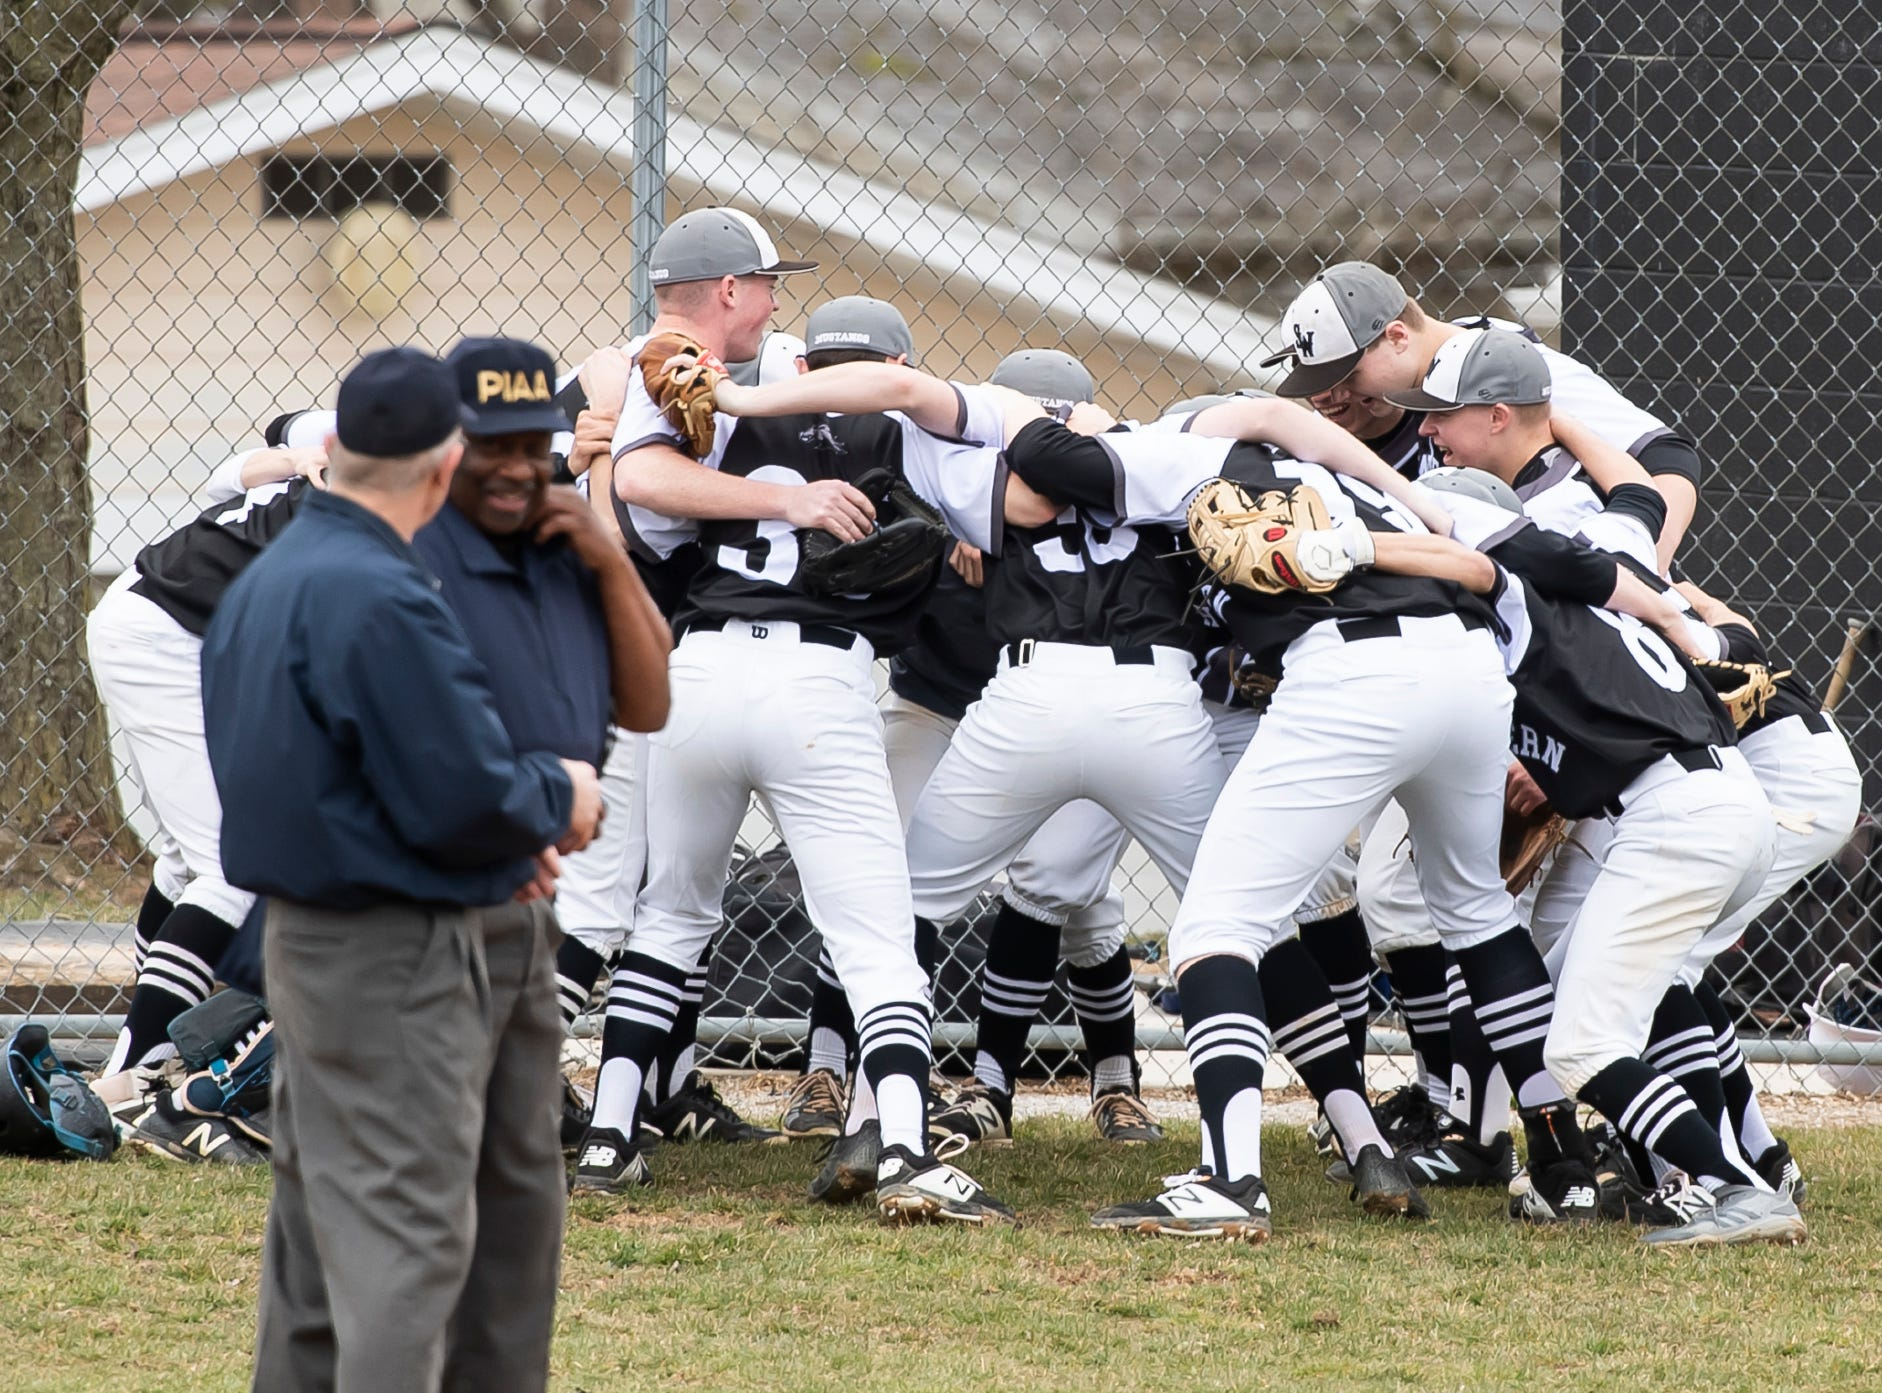 The South Western Mustangs get pumped up before a baseball game against Carlisle at home on Friday, March 29, 2019. The Mustangs won 11-9.